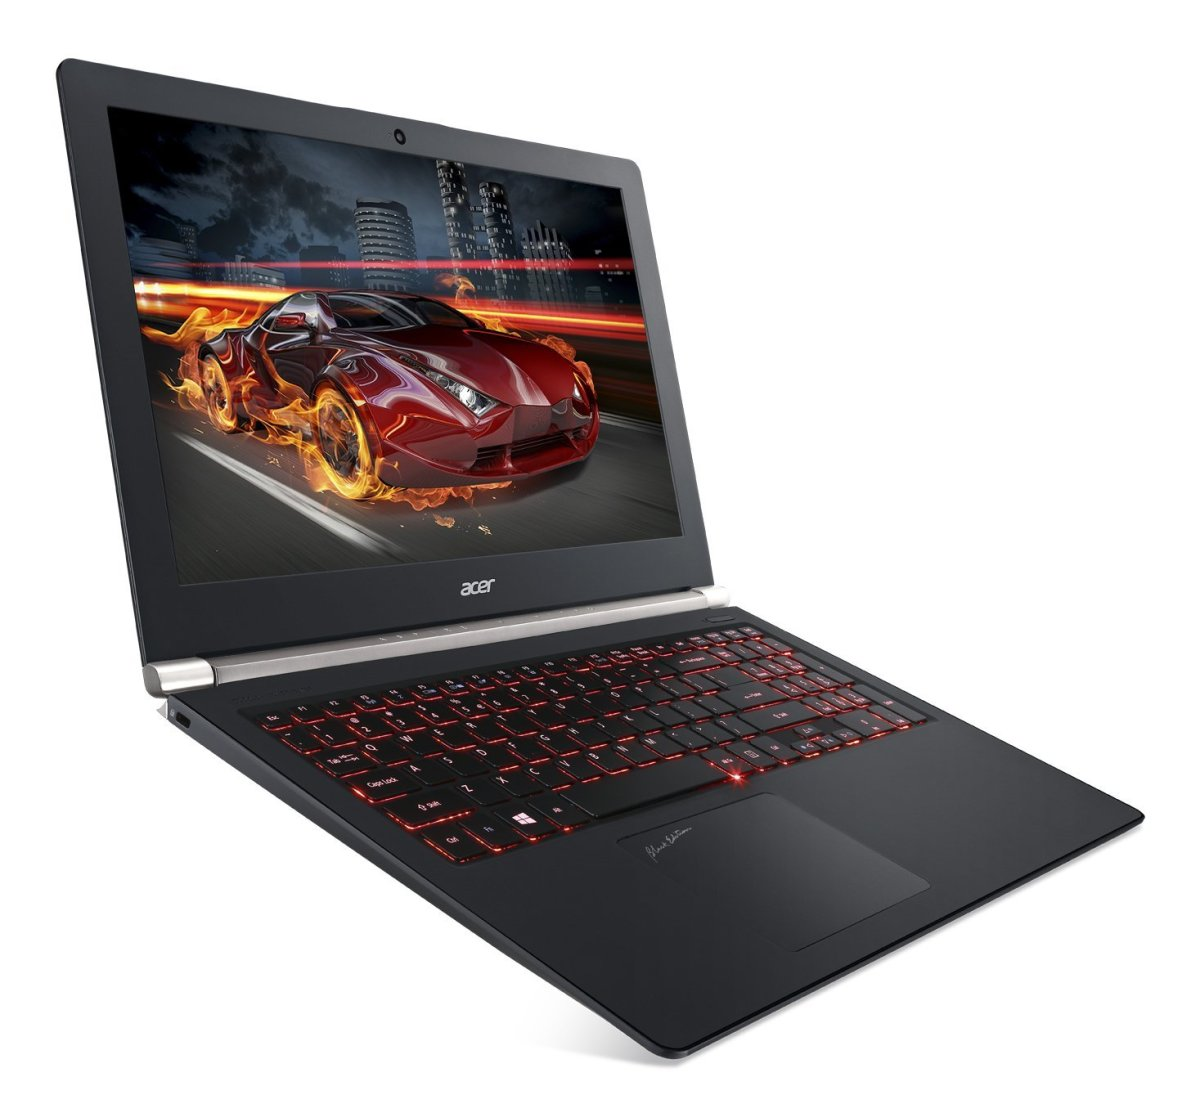 80% of Acer V15 Nitro users rated it over 4.5 stars